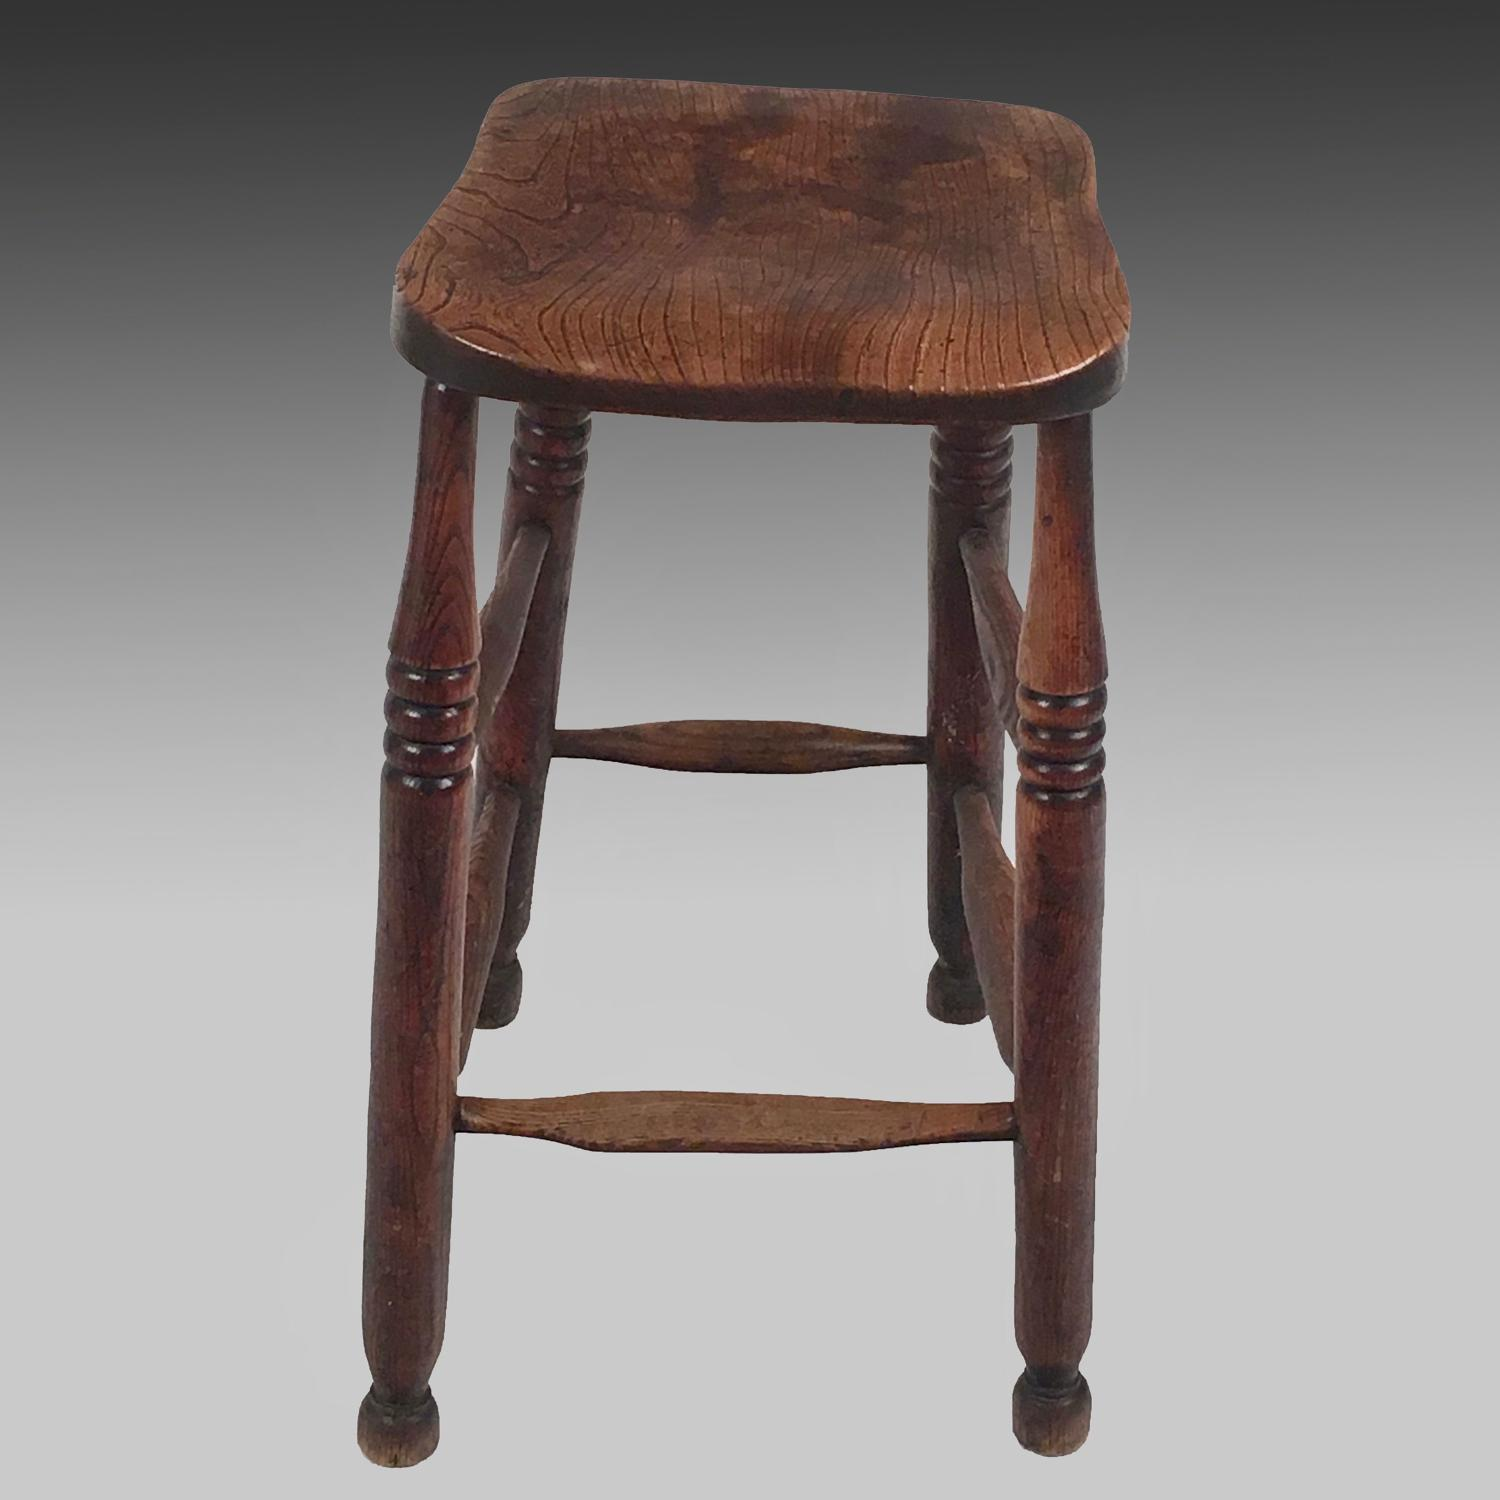 19th century ash and elm high stool